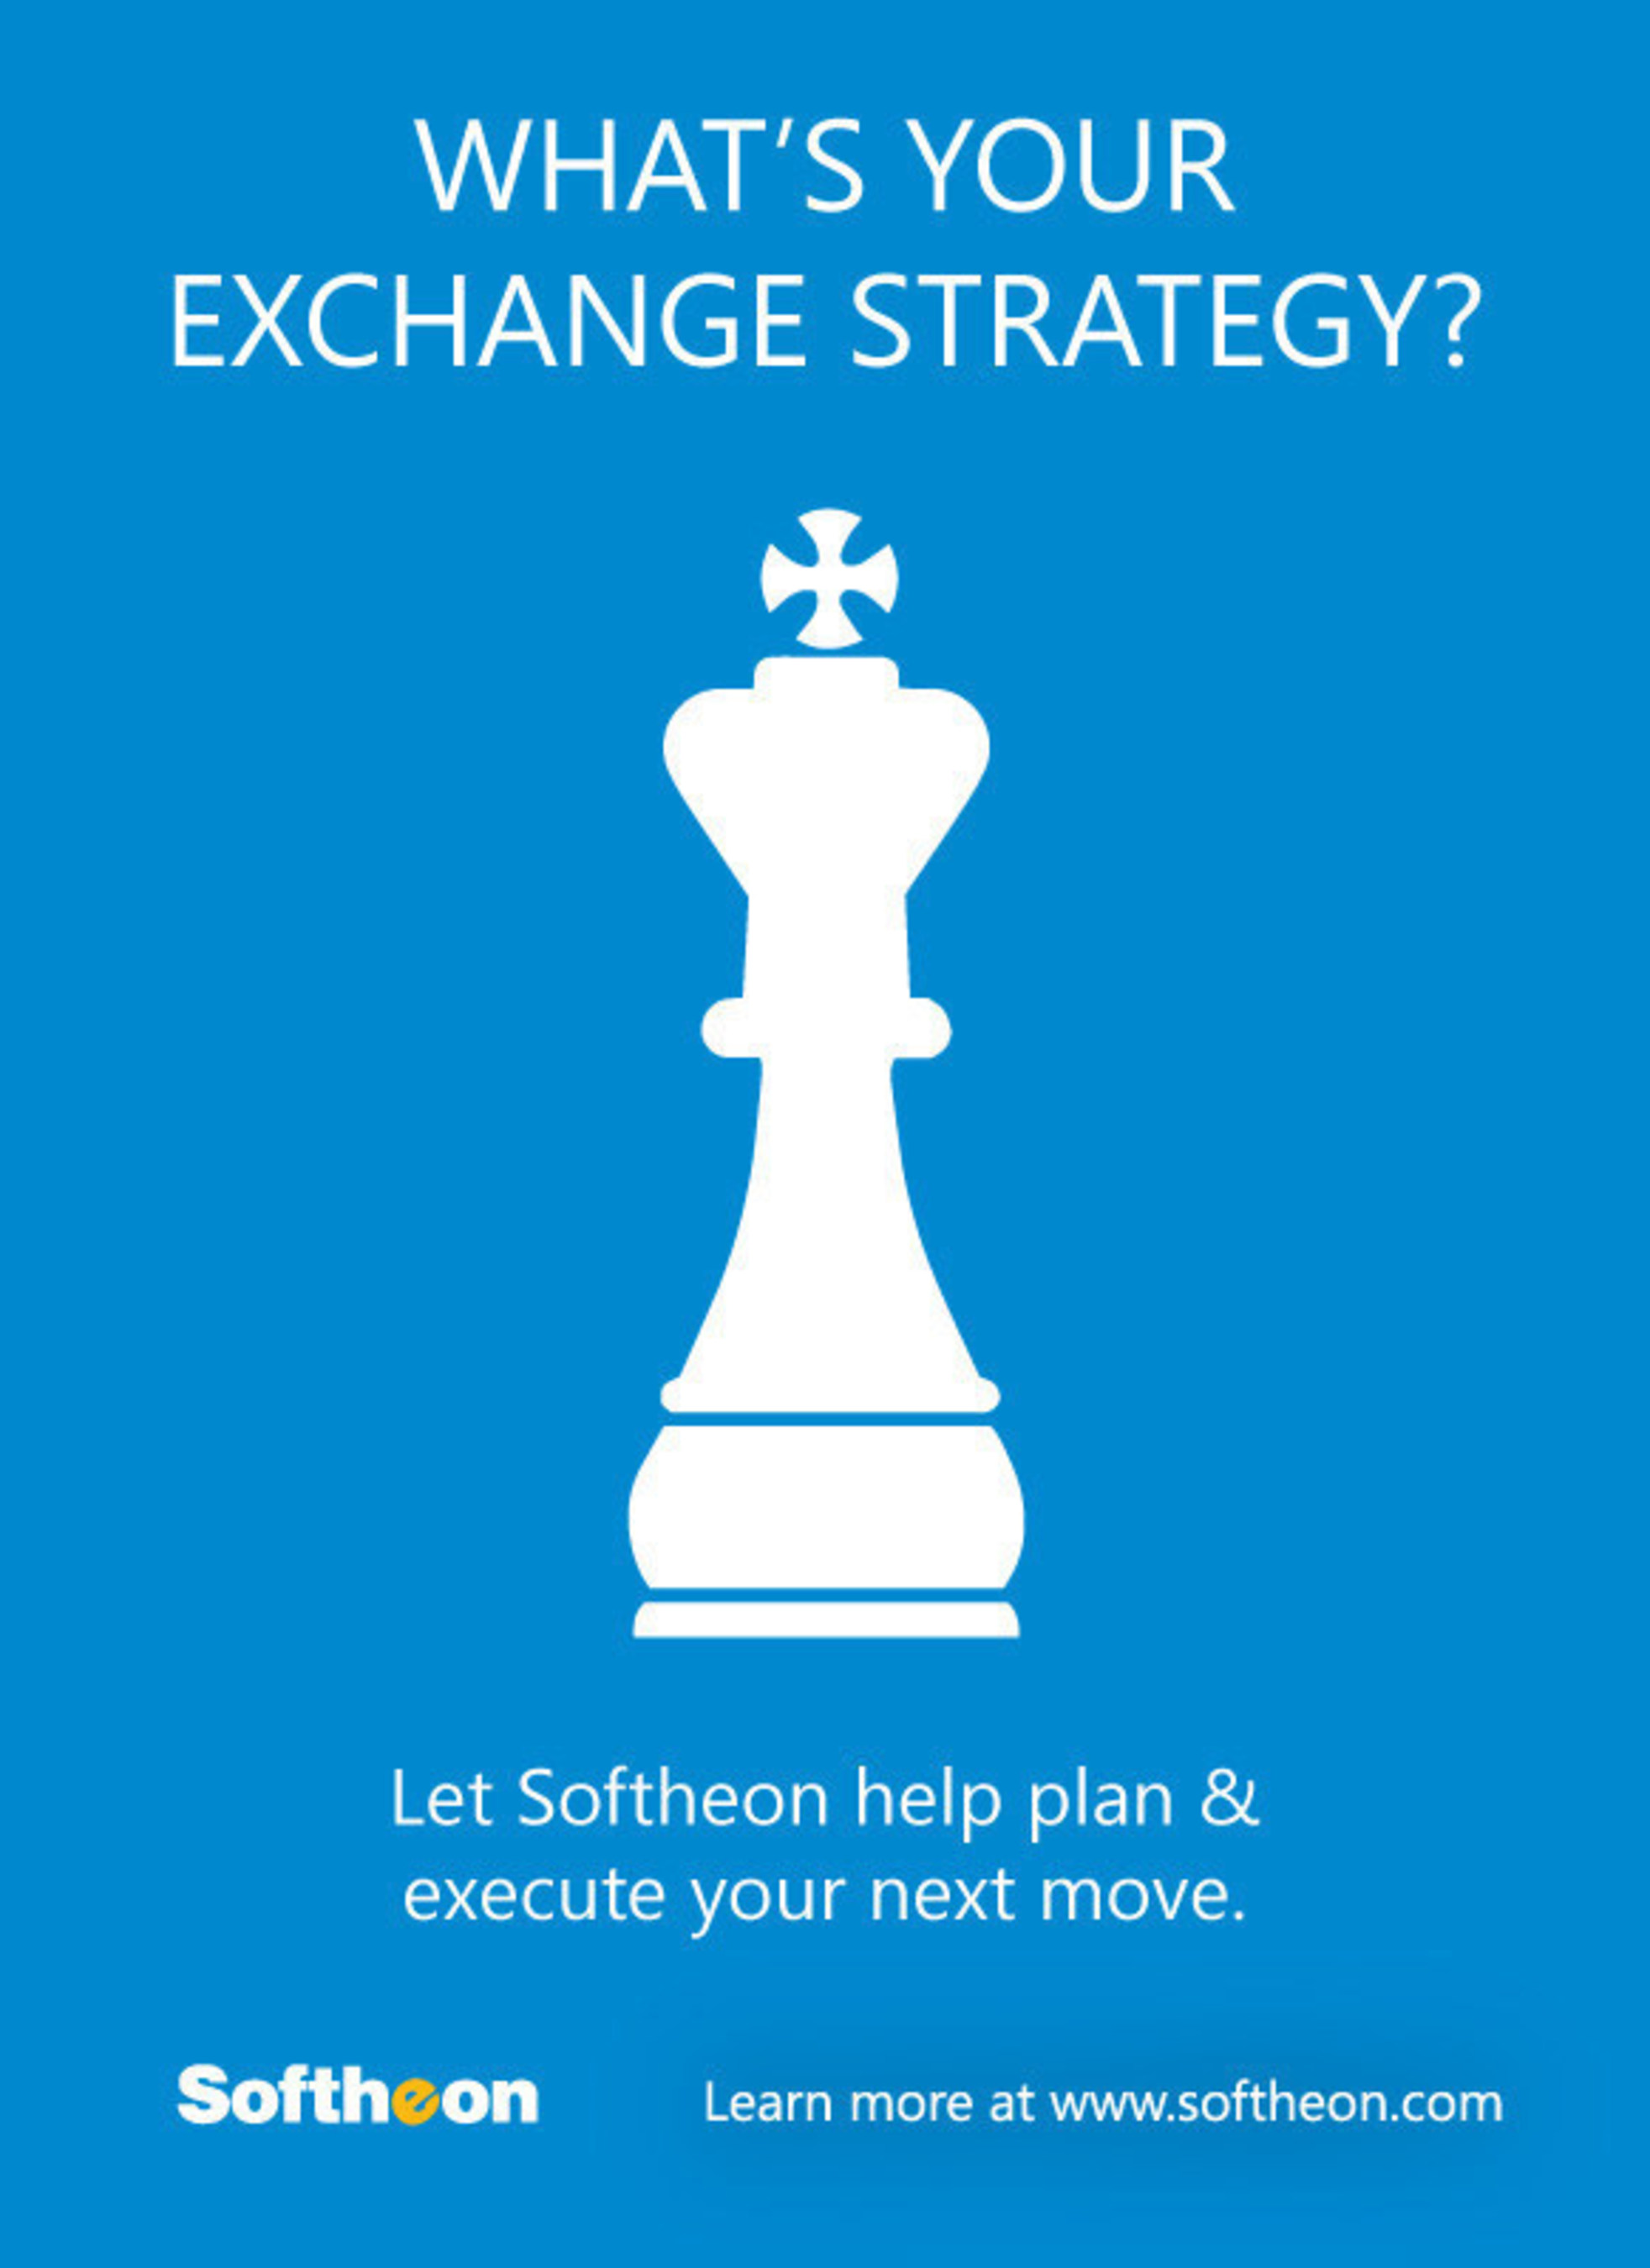 Softheon Launches Cost-Sharing Reduction Analysis and Reconciliation Solution for Health Insurance Exchanges